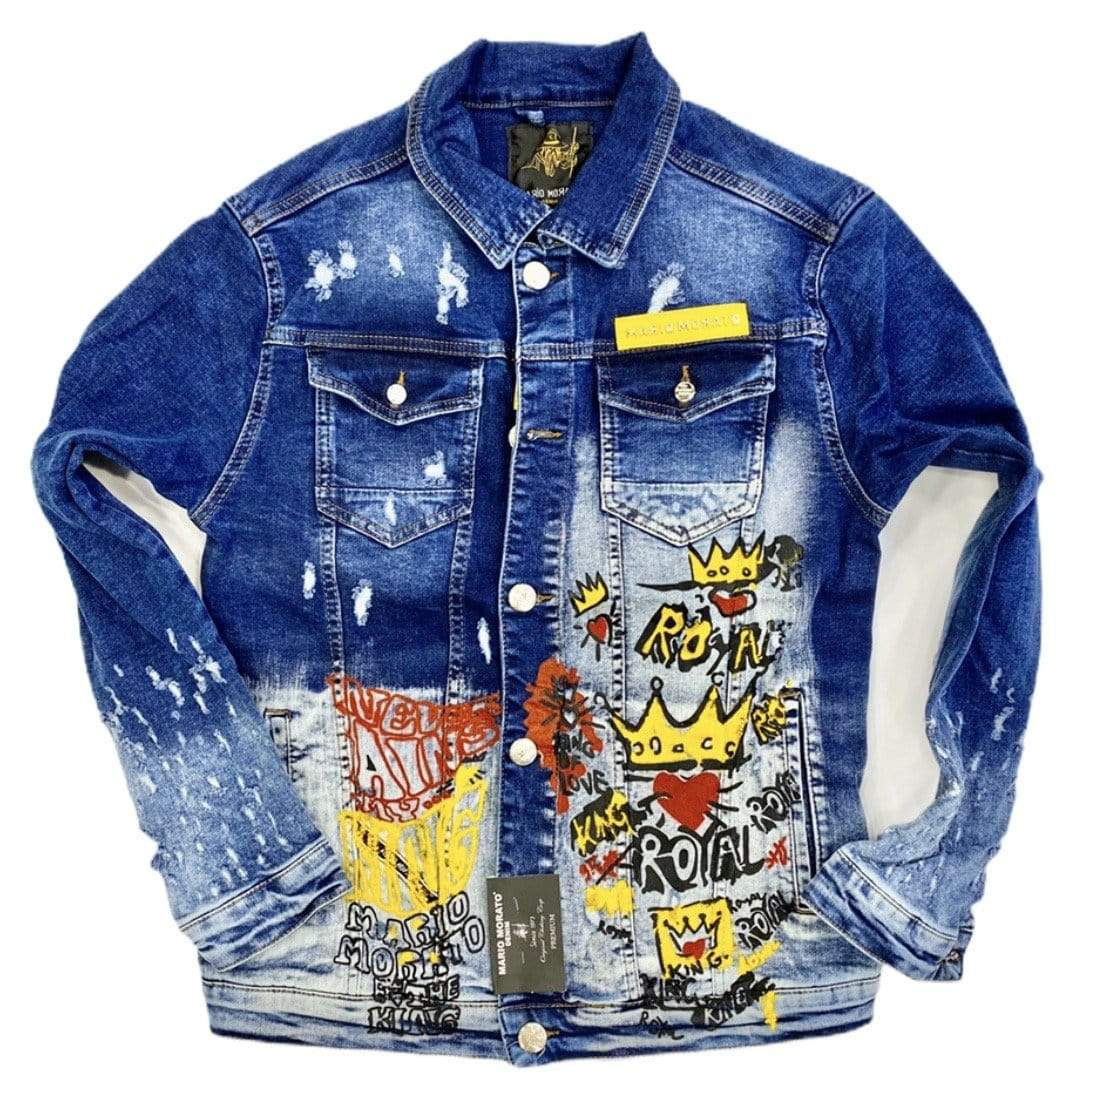 Rebel Groove Jackets Denim Blue Royal King Jacket